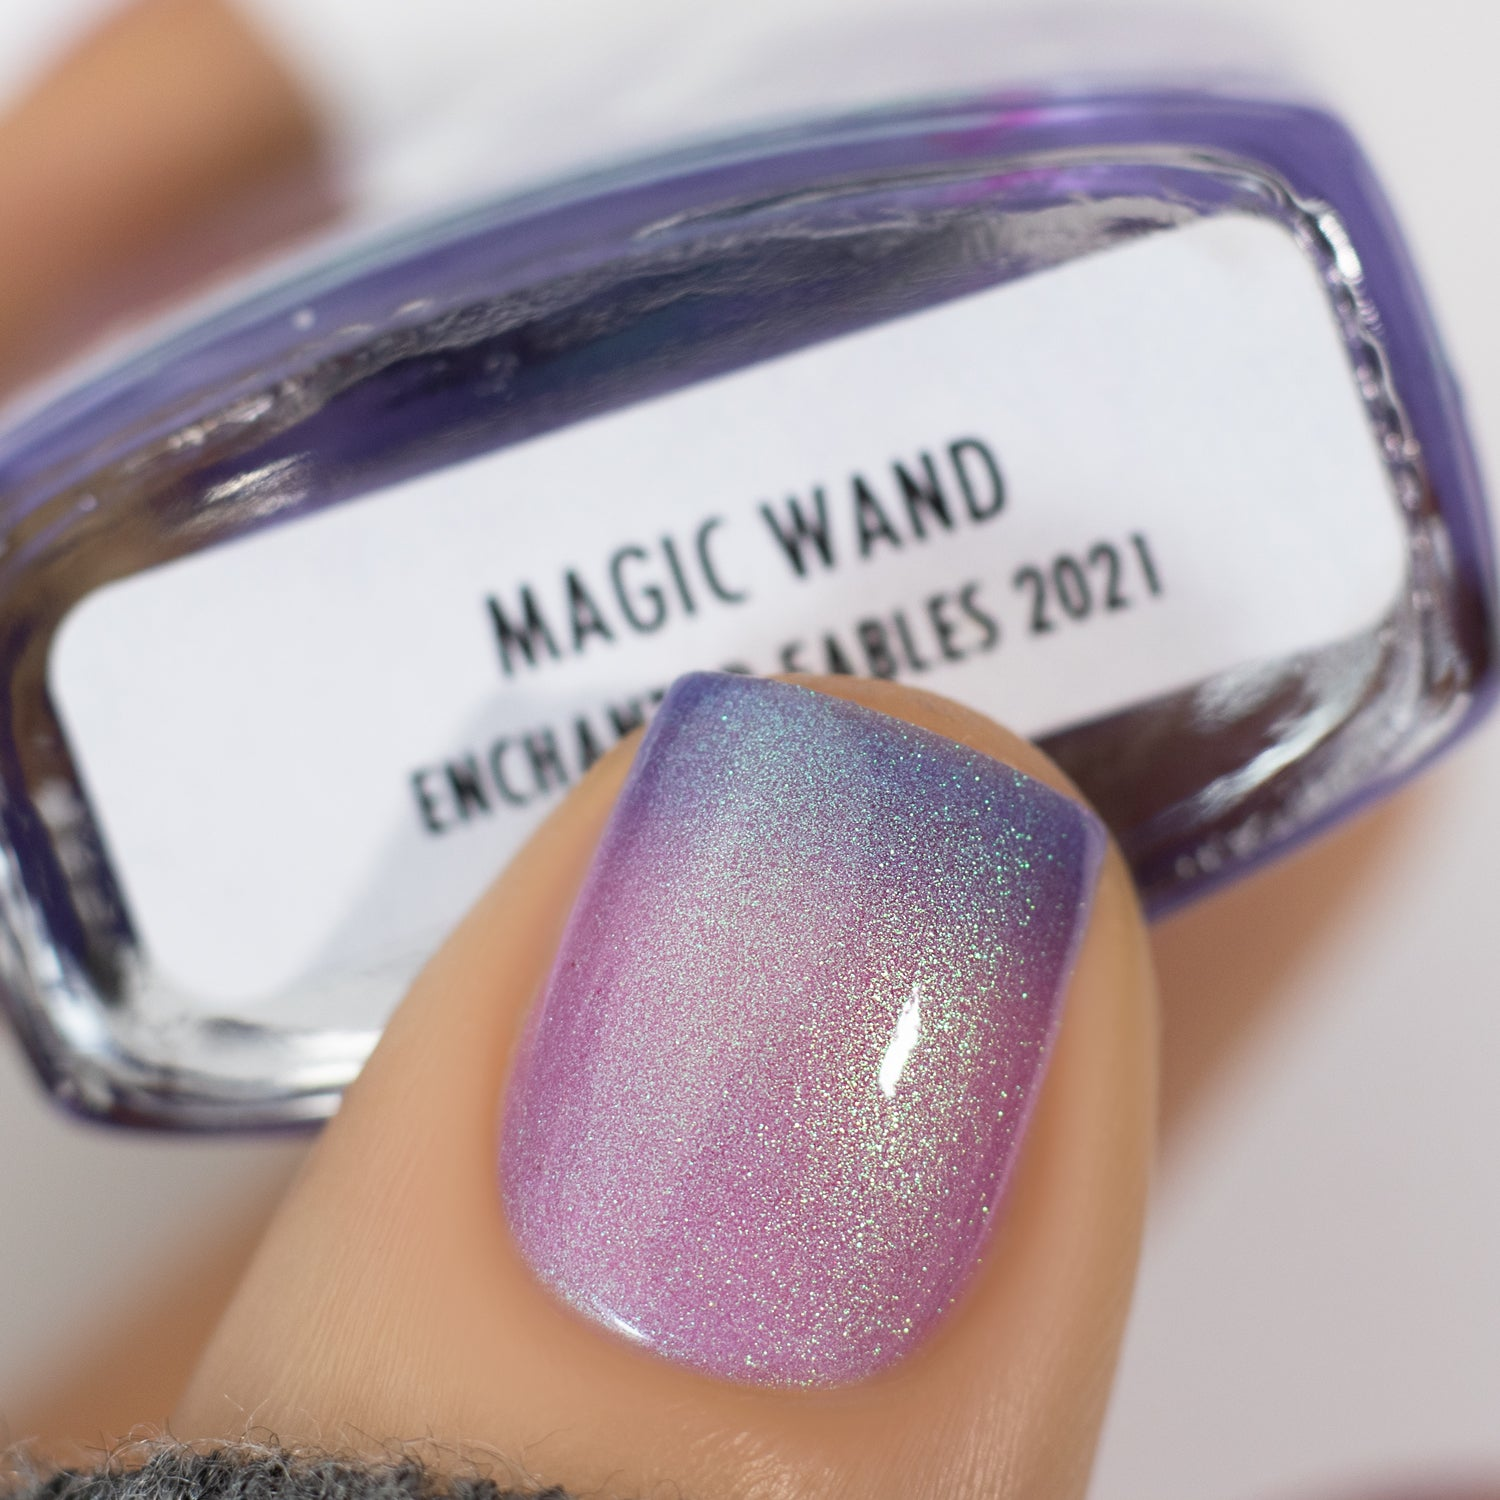 Magic Wand (ships early March)